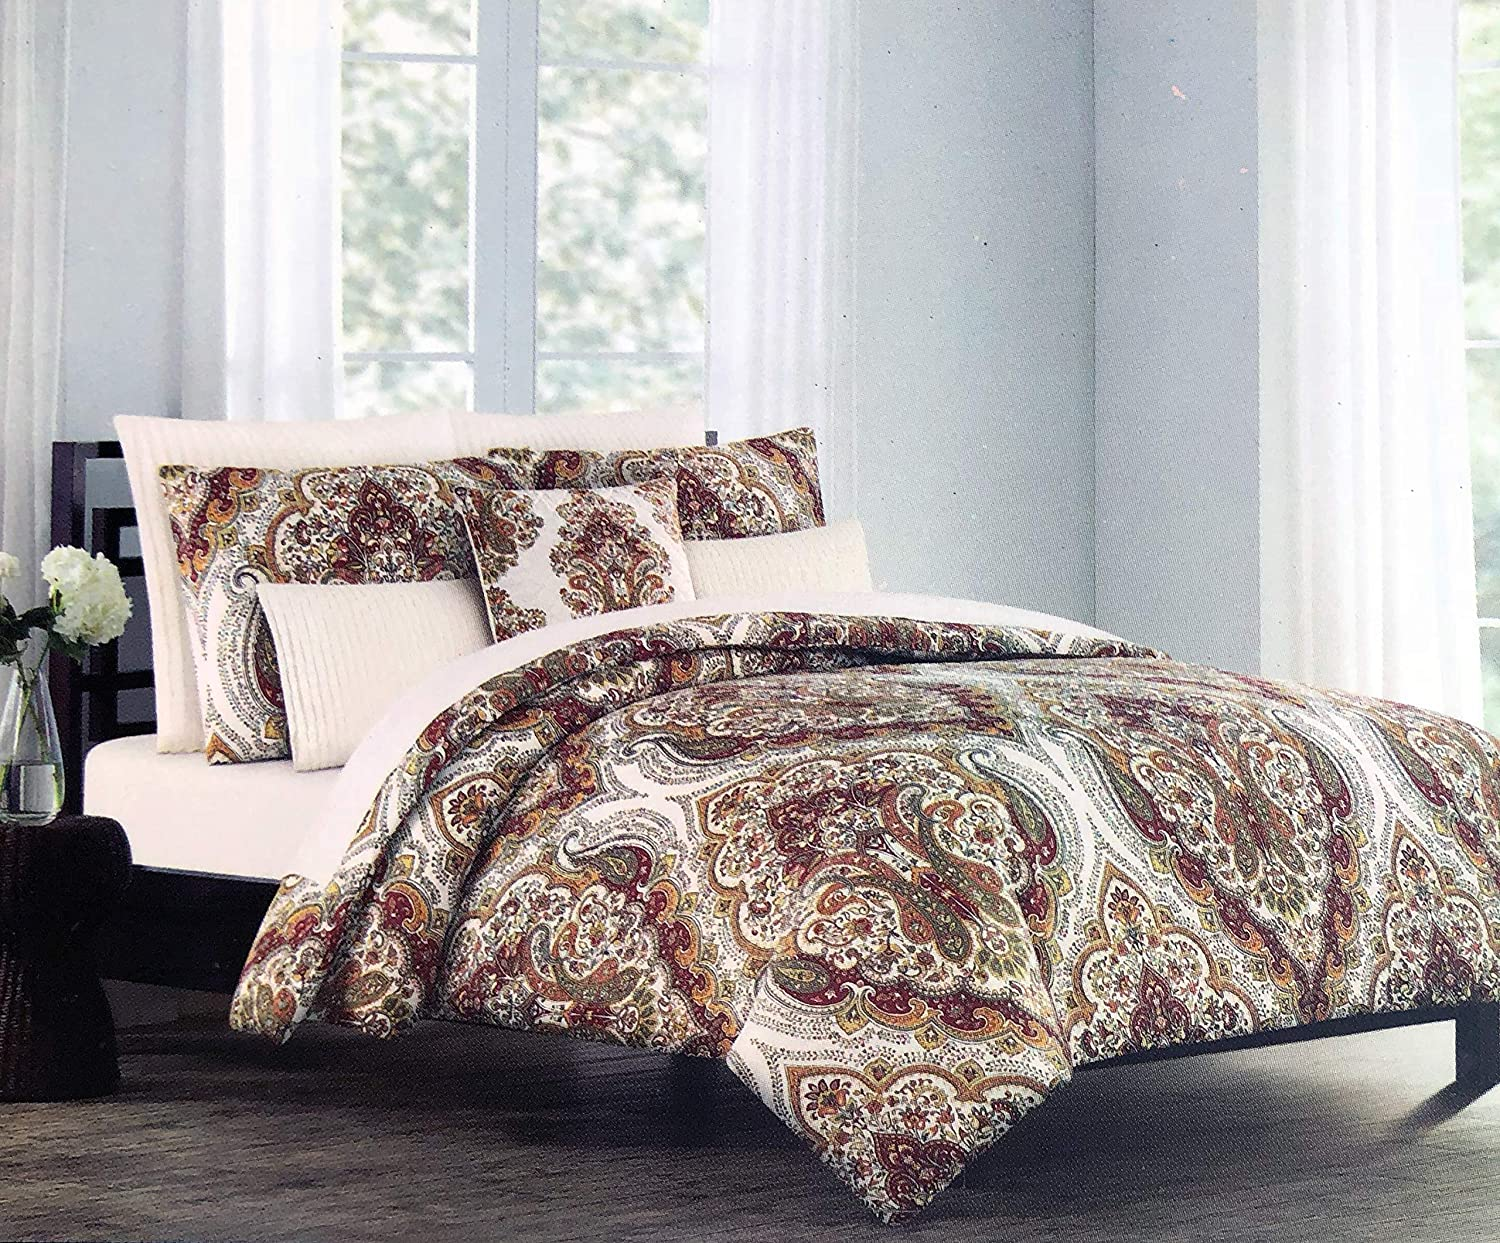 Tahari Home Maison Bedding 3 Piece Full/Queen Size Luxury Cotton 3 Piece Duvet Comforter Cover Shams Set Rust Orange Brown Taupe Boho Intricate Floral Paisley Medallions on White - Salma Paisley